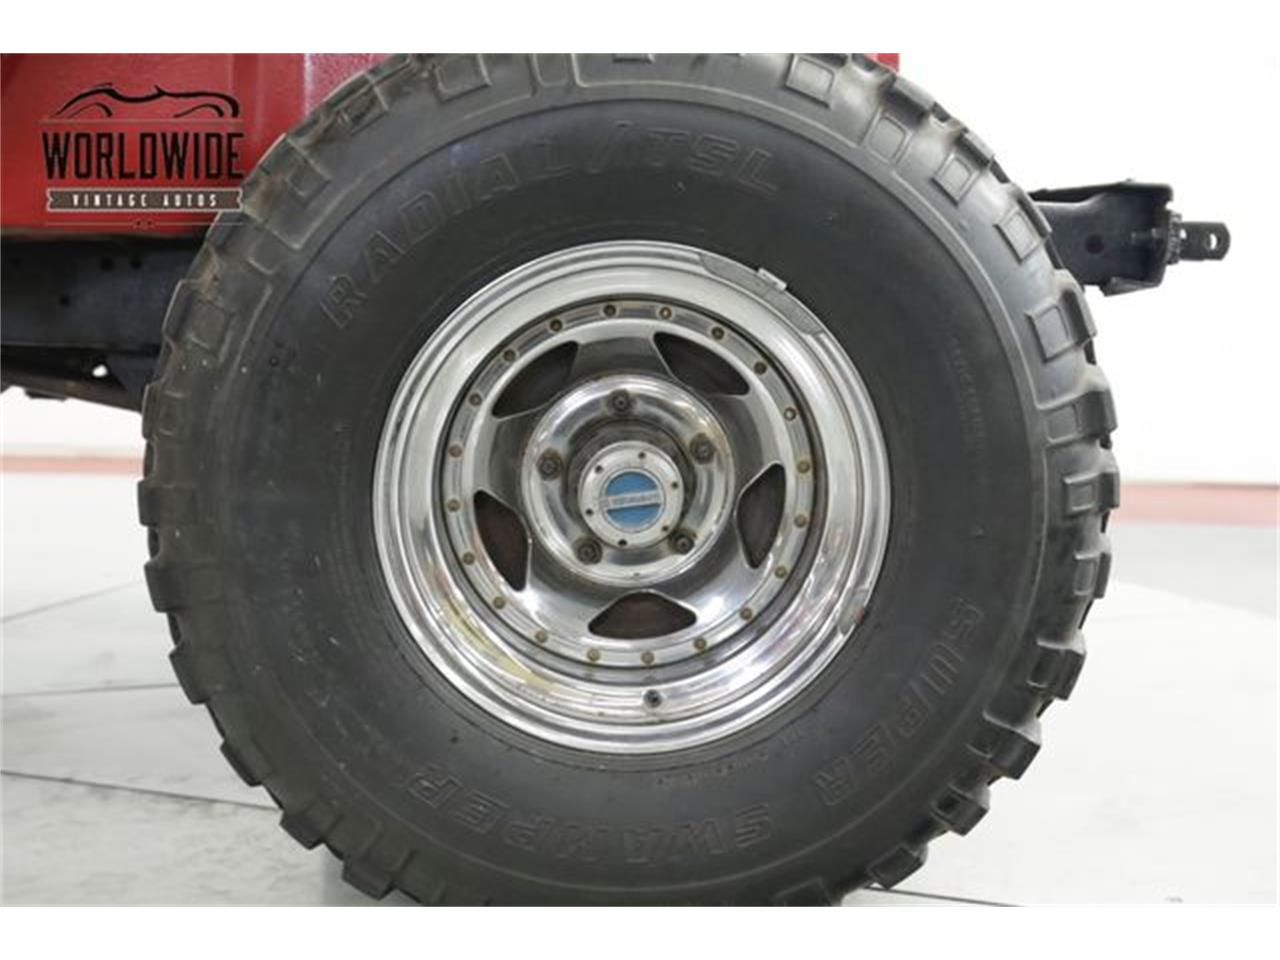 Large Picture of '62 Willys Jeep Offered by Worldwide Vintage Autos - PSGE